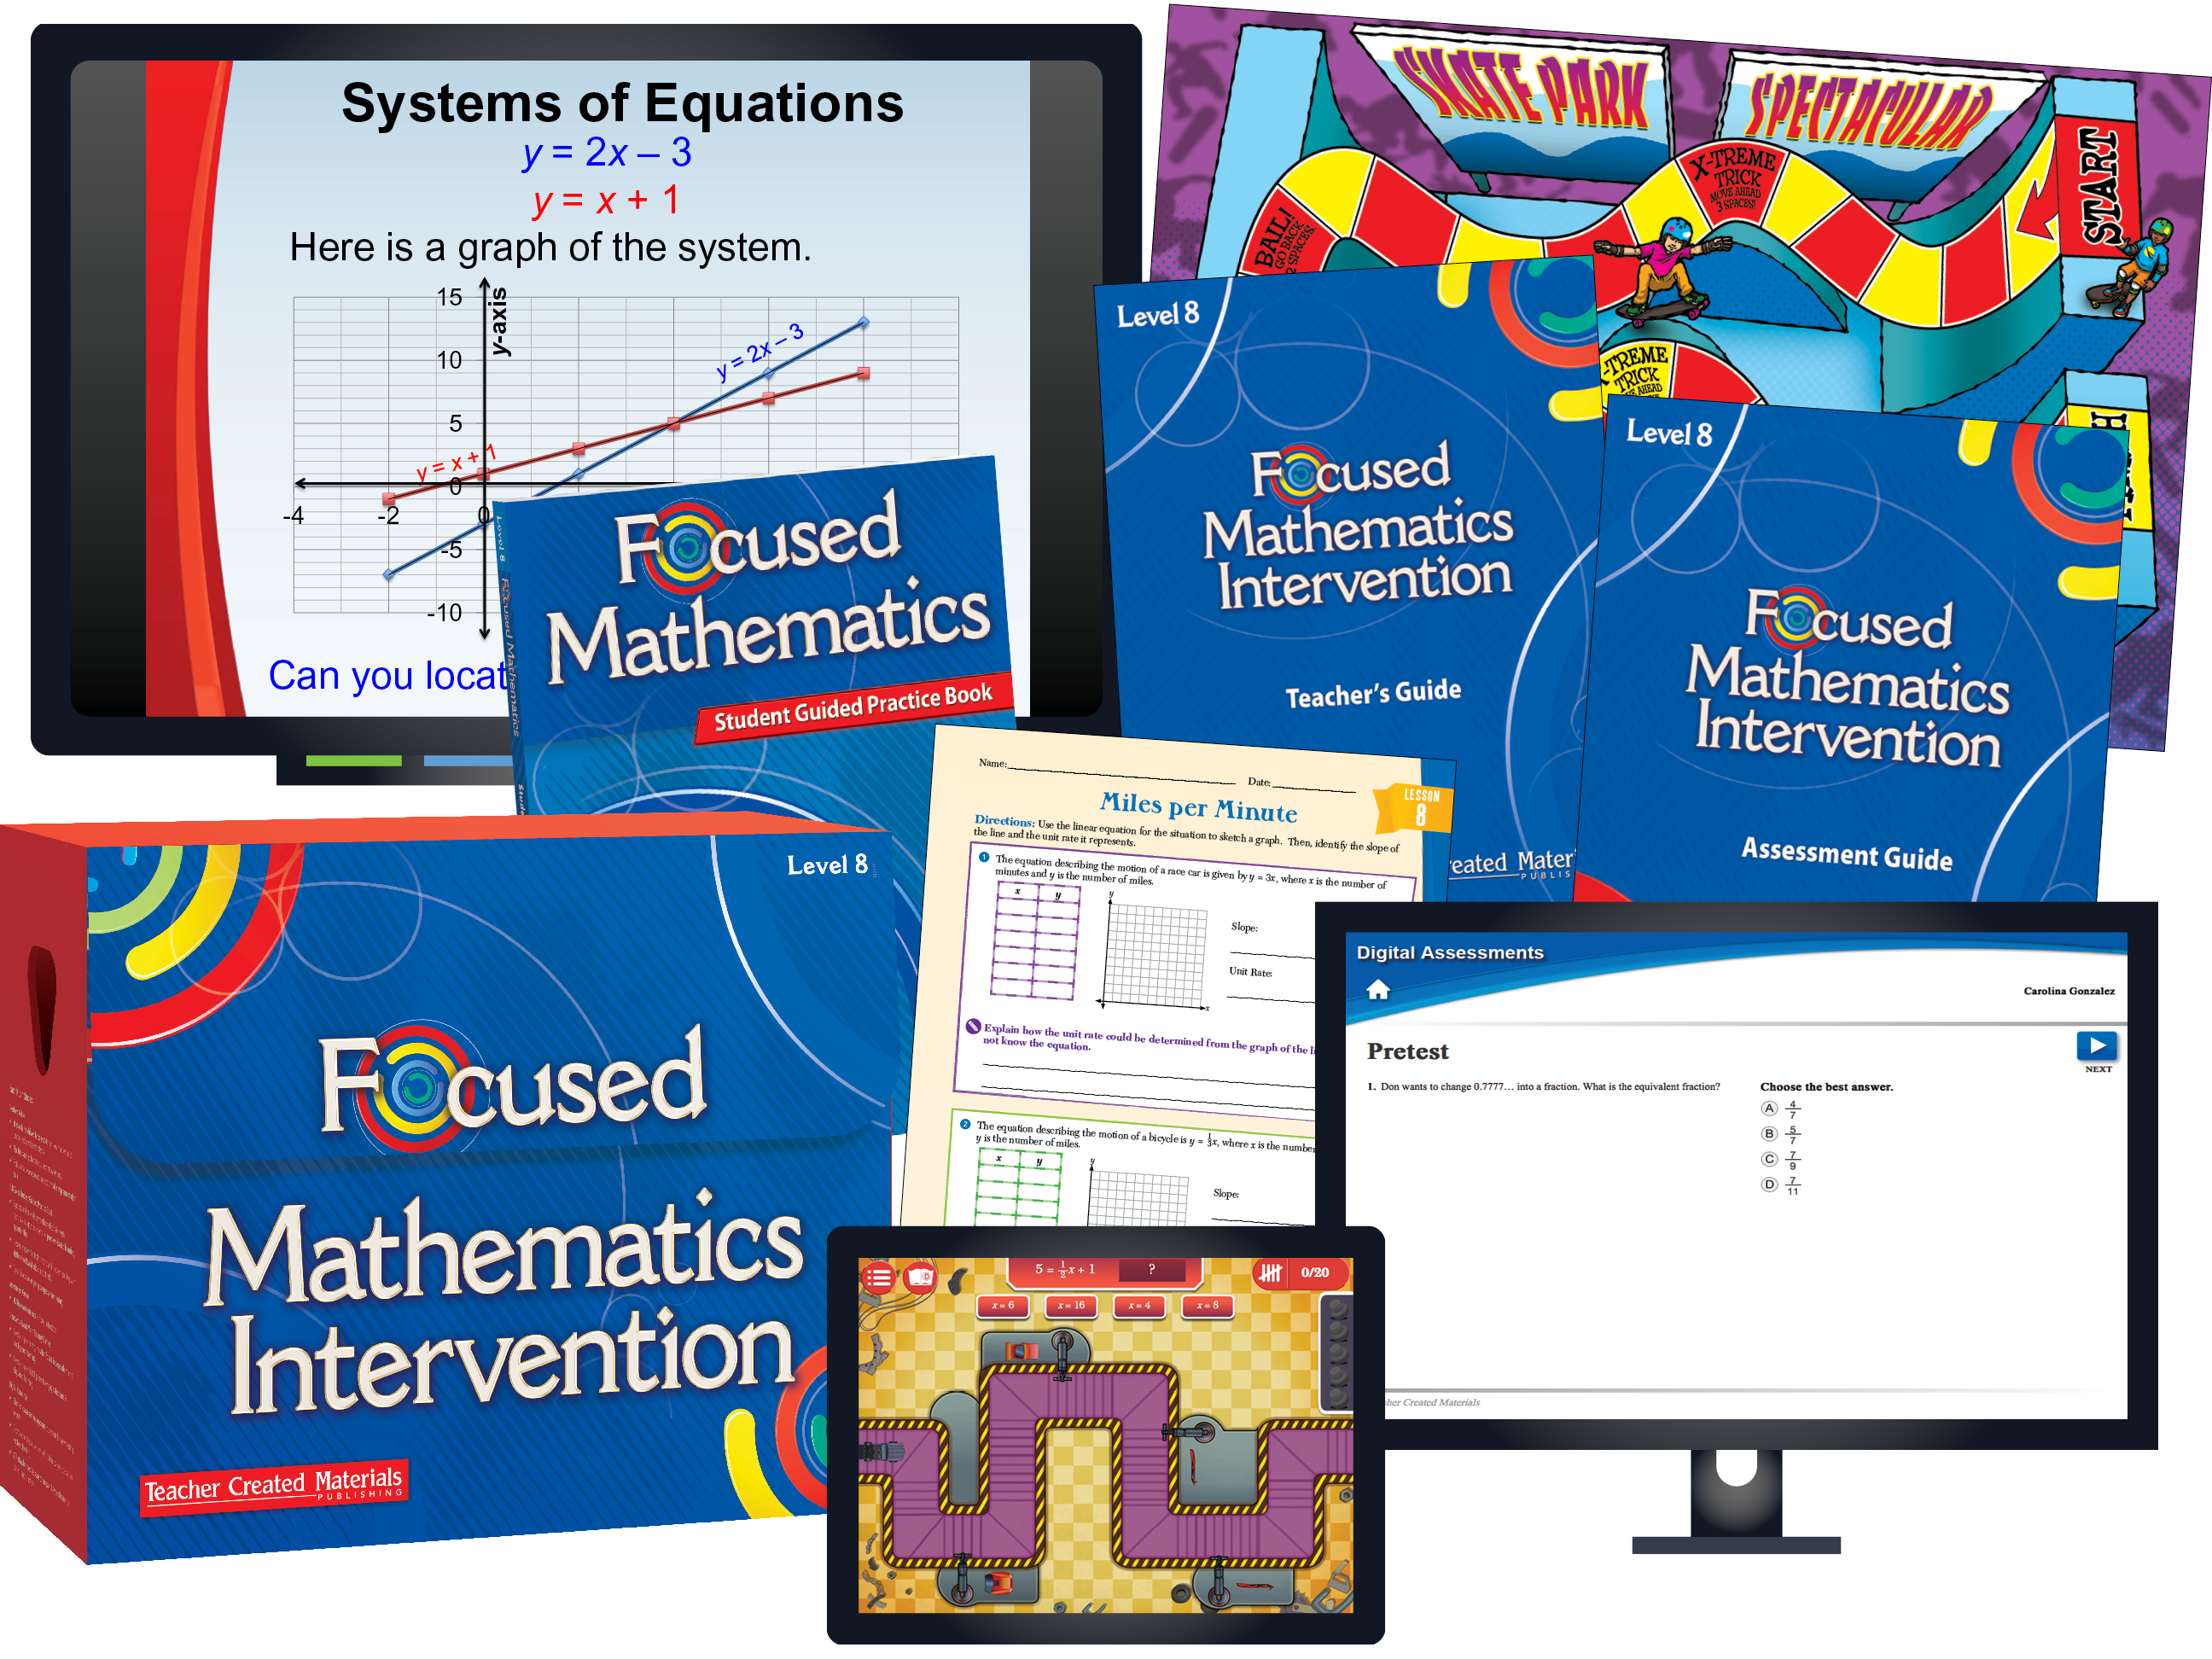 Focused Mathematics Intervention: Level 8 Kit